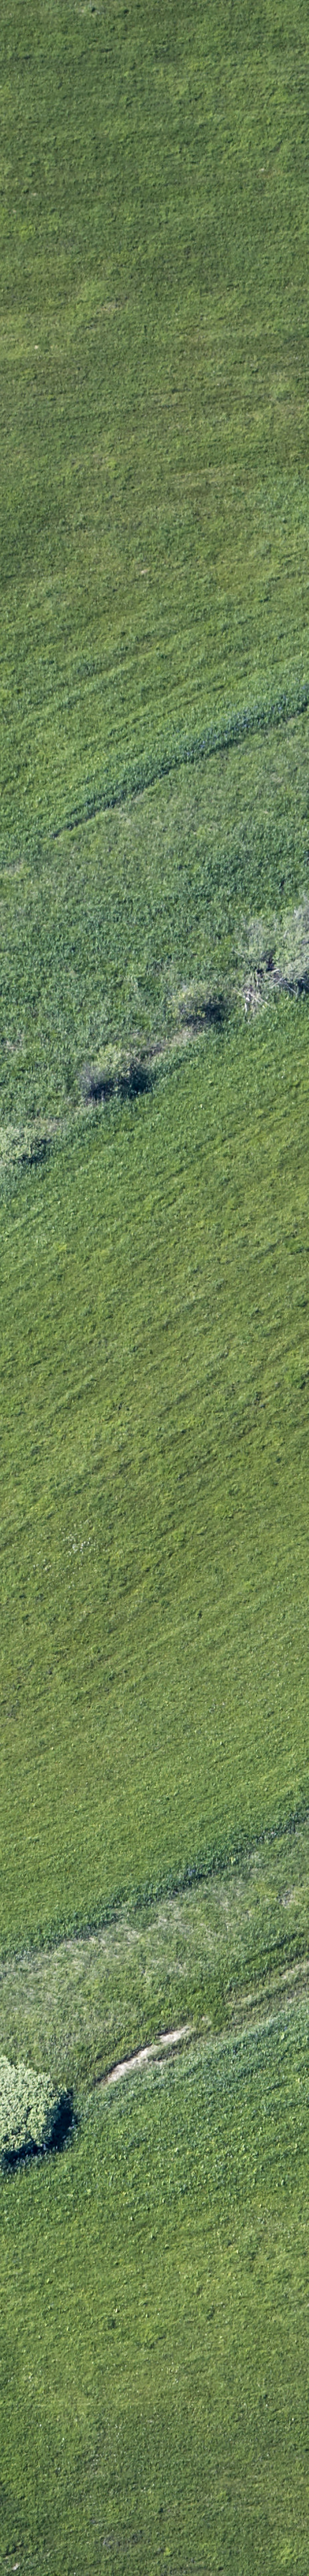 Aerial view of the Pulvermoos nature reserve - Klaus Leidorf Aerial Photography